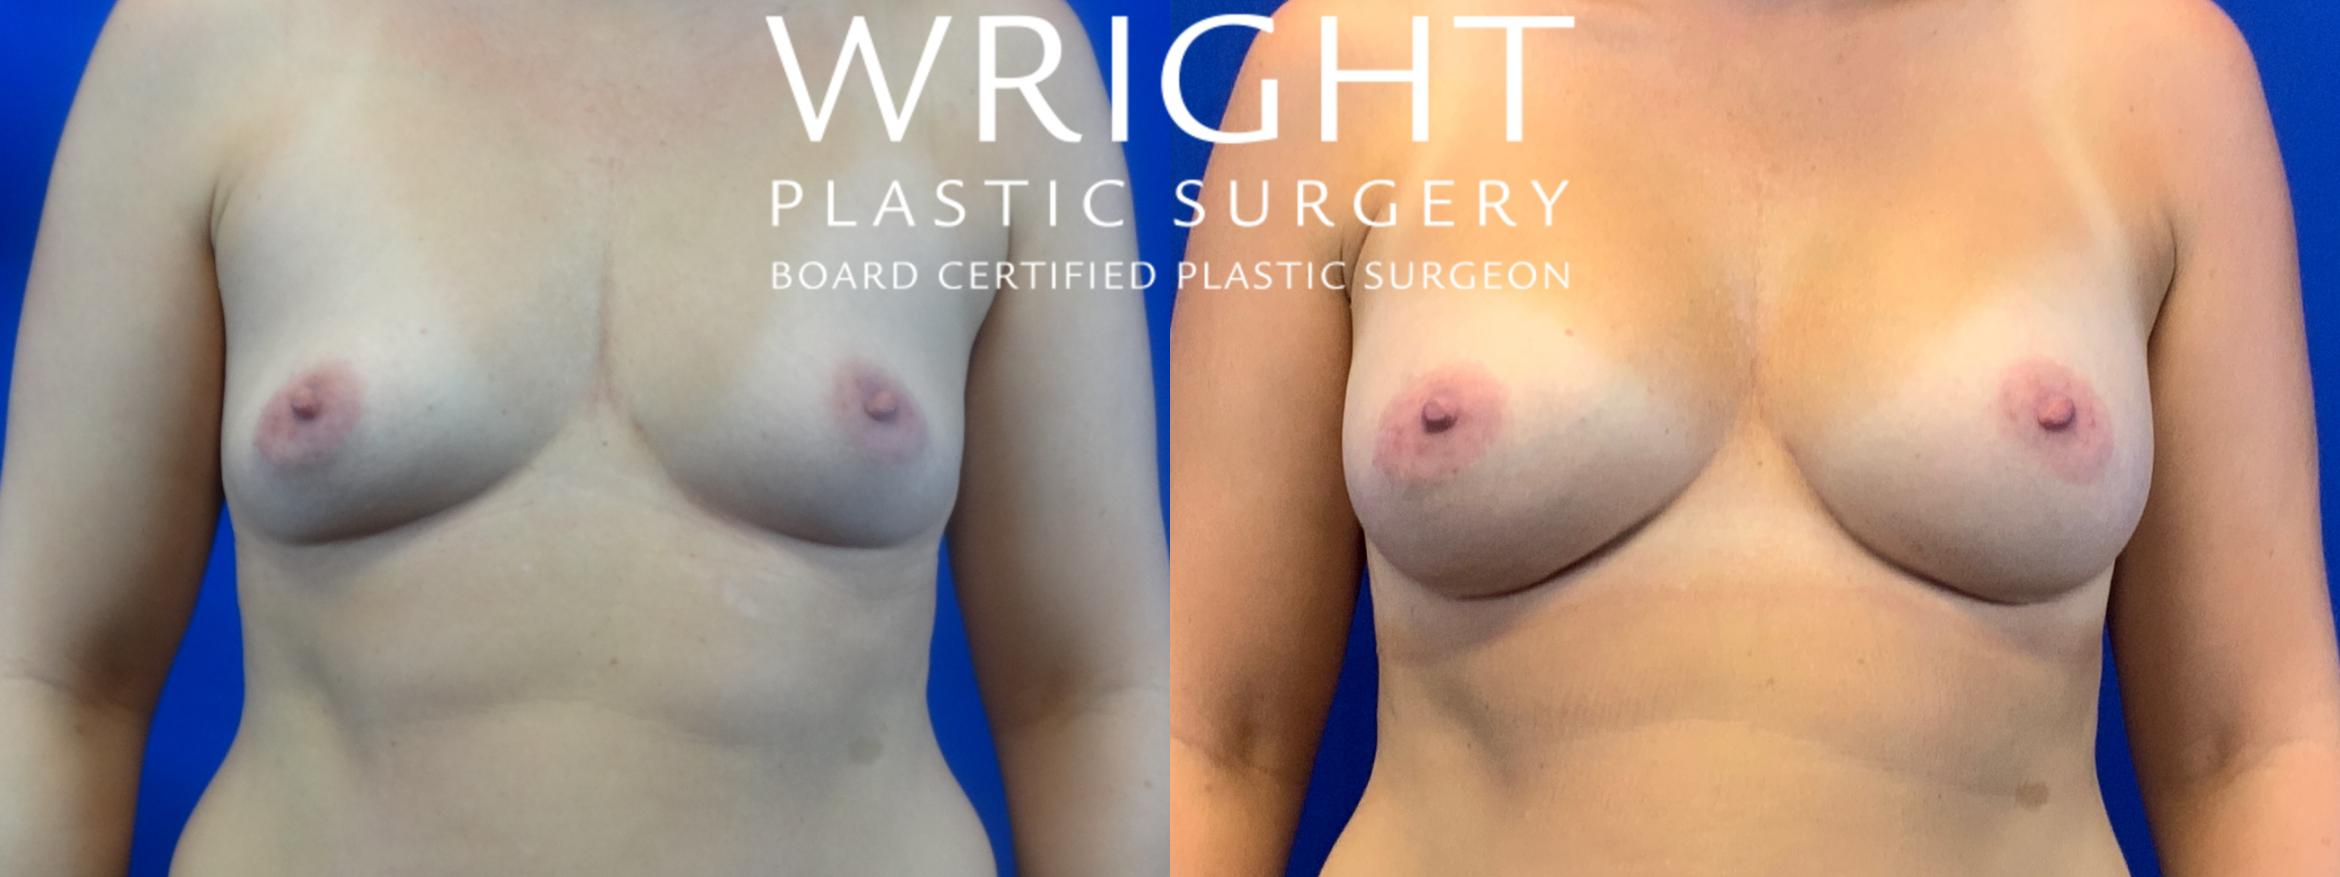 Breast Augmentation Case 31 Before & After Front | Little Rock, Arkansas | Dr. Wright Plastic Surgery